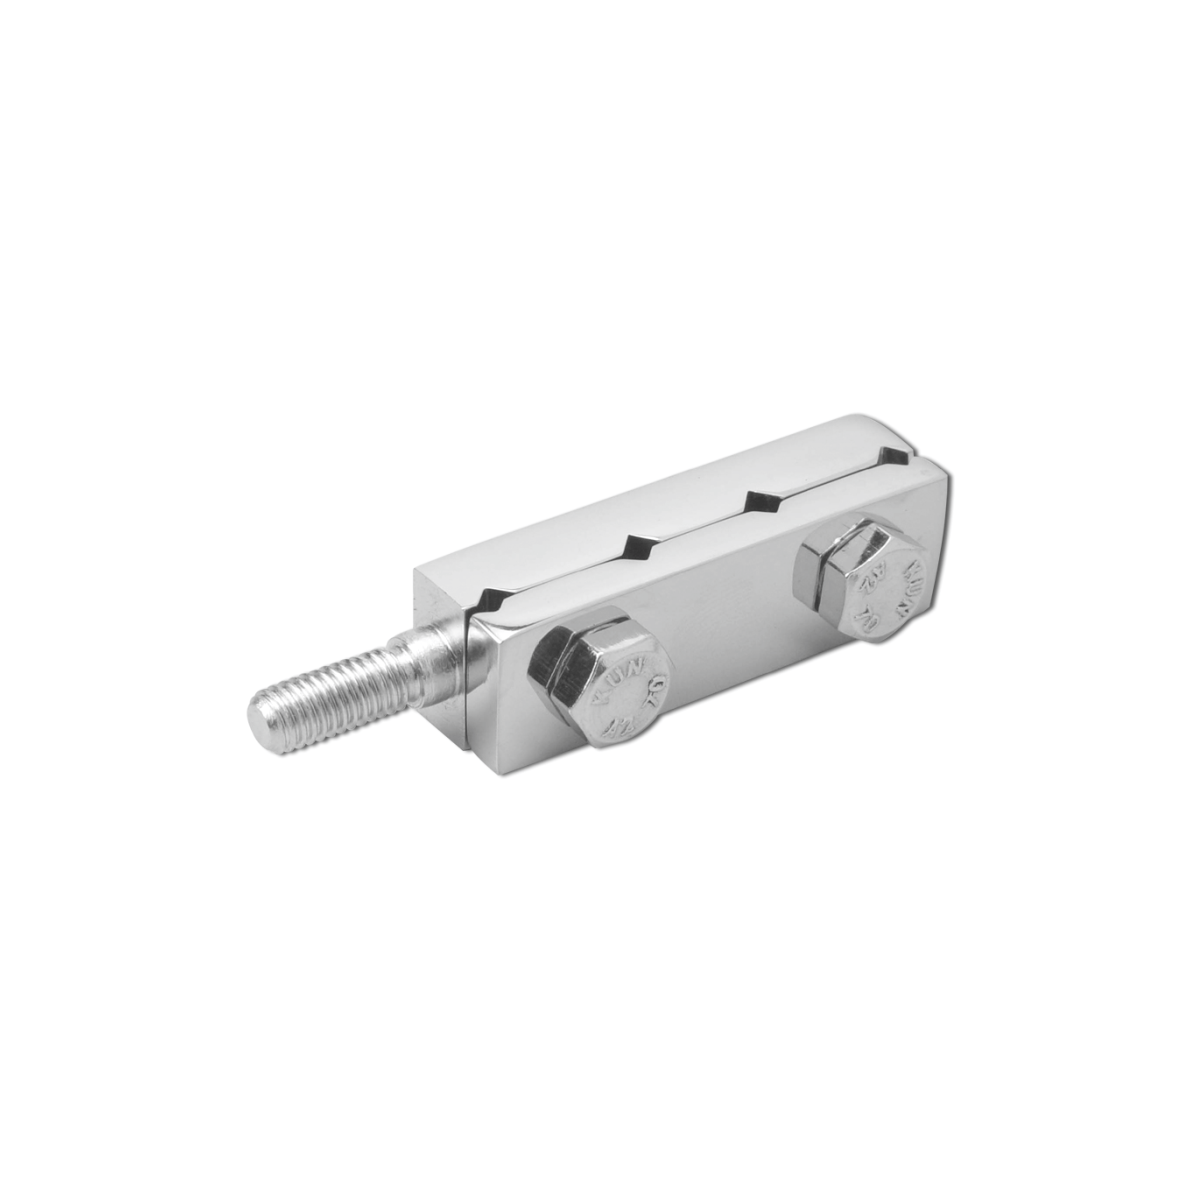 Multipin Fixation Clamp